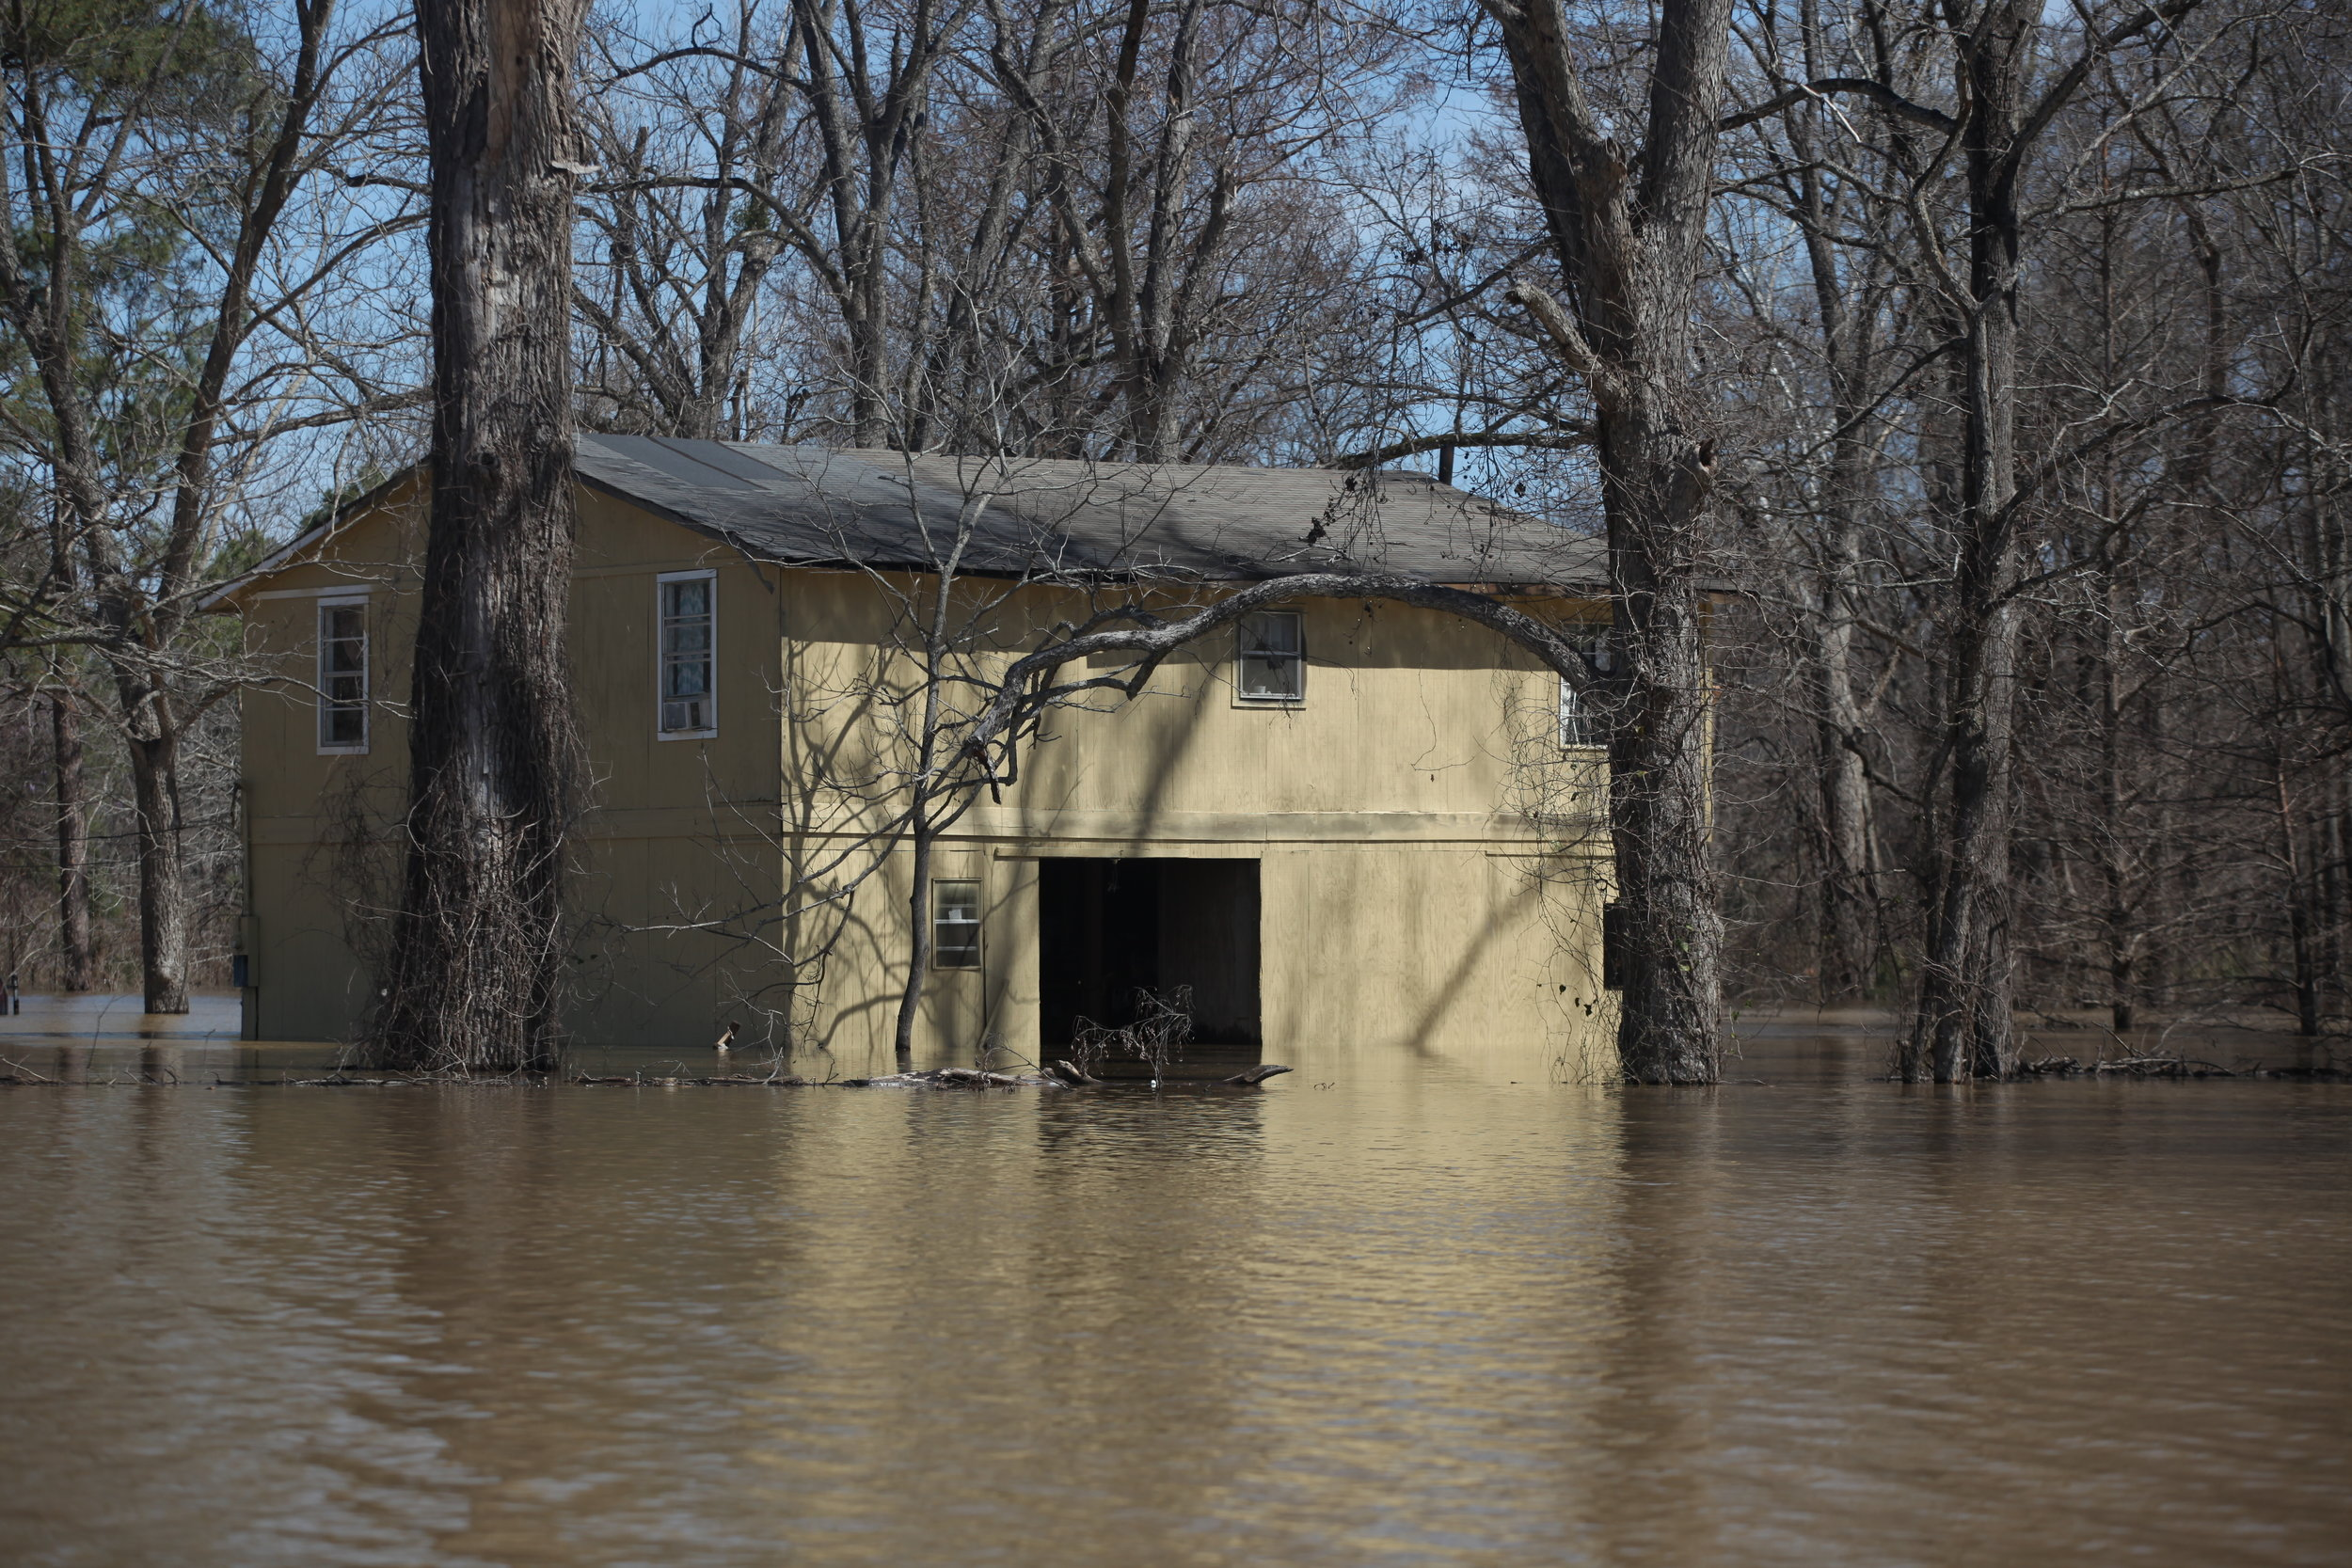 A house on Chickasaw Lane seen surrounded by floodwaters in Vicksburg, Miss., Tuesday, March 13, 2018. (Courtland Wells/The Vicksburg Post, via AP)